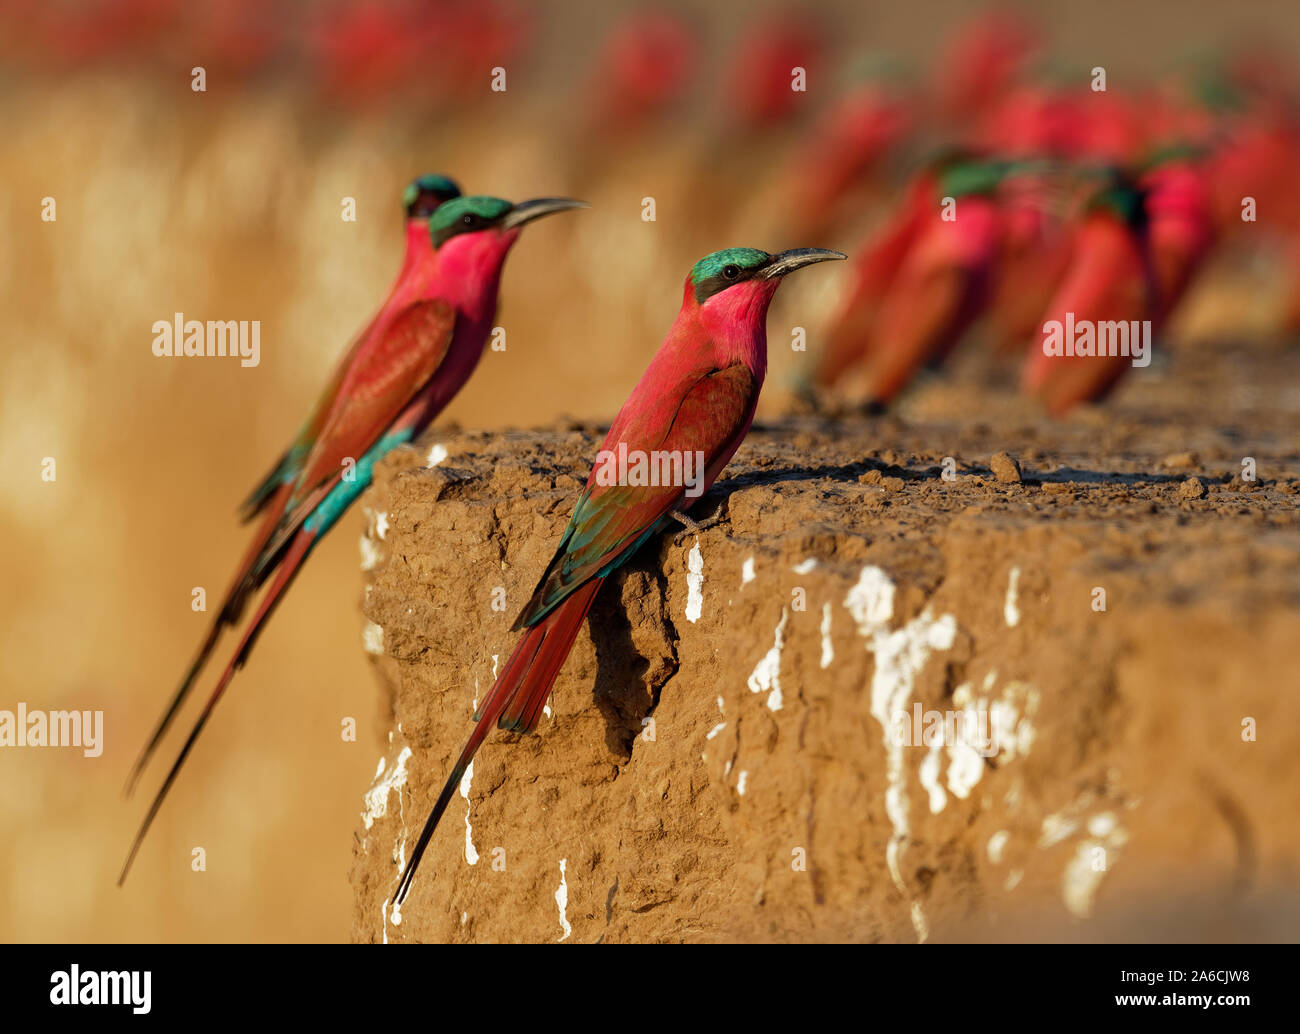 Beautiful red bird - Southern Carmine Bee-eater - Merops nubicus nubicoides flying and sitting on their nesting colony in Mana Pools Zimbabwe, Africa. Stock Photo